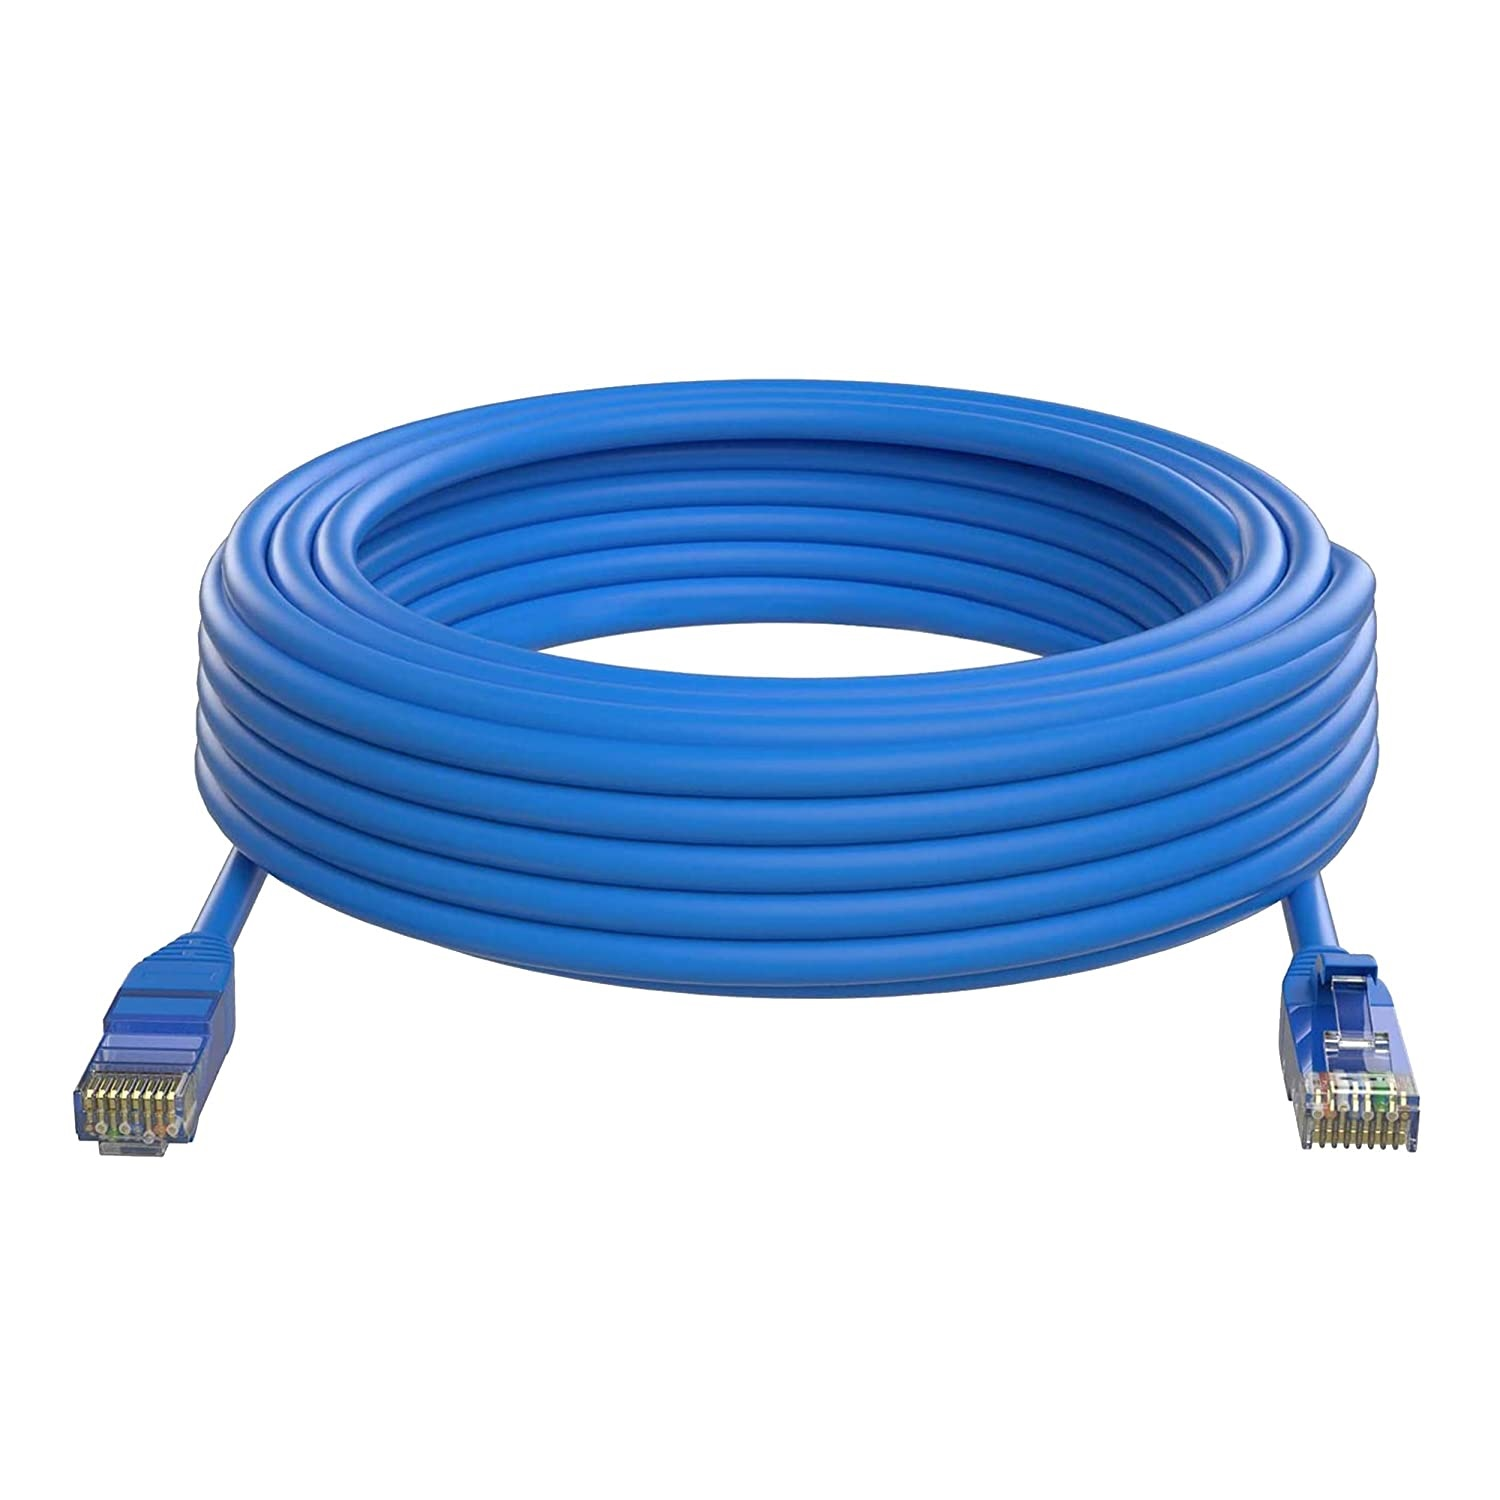 Maxlin Cable Cat6 Ethernet Cable